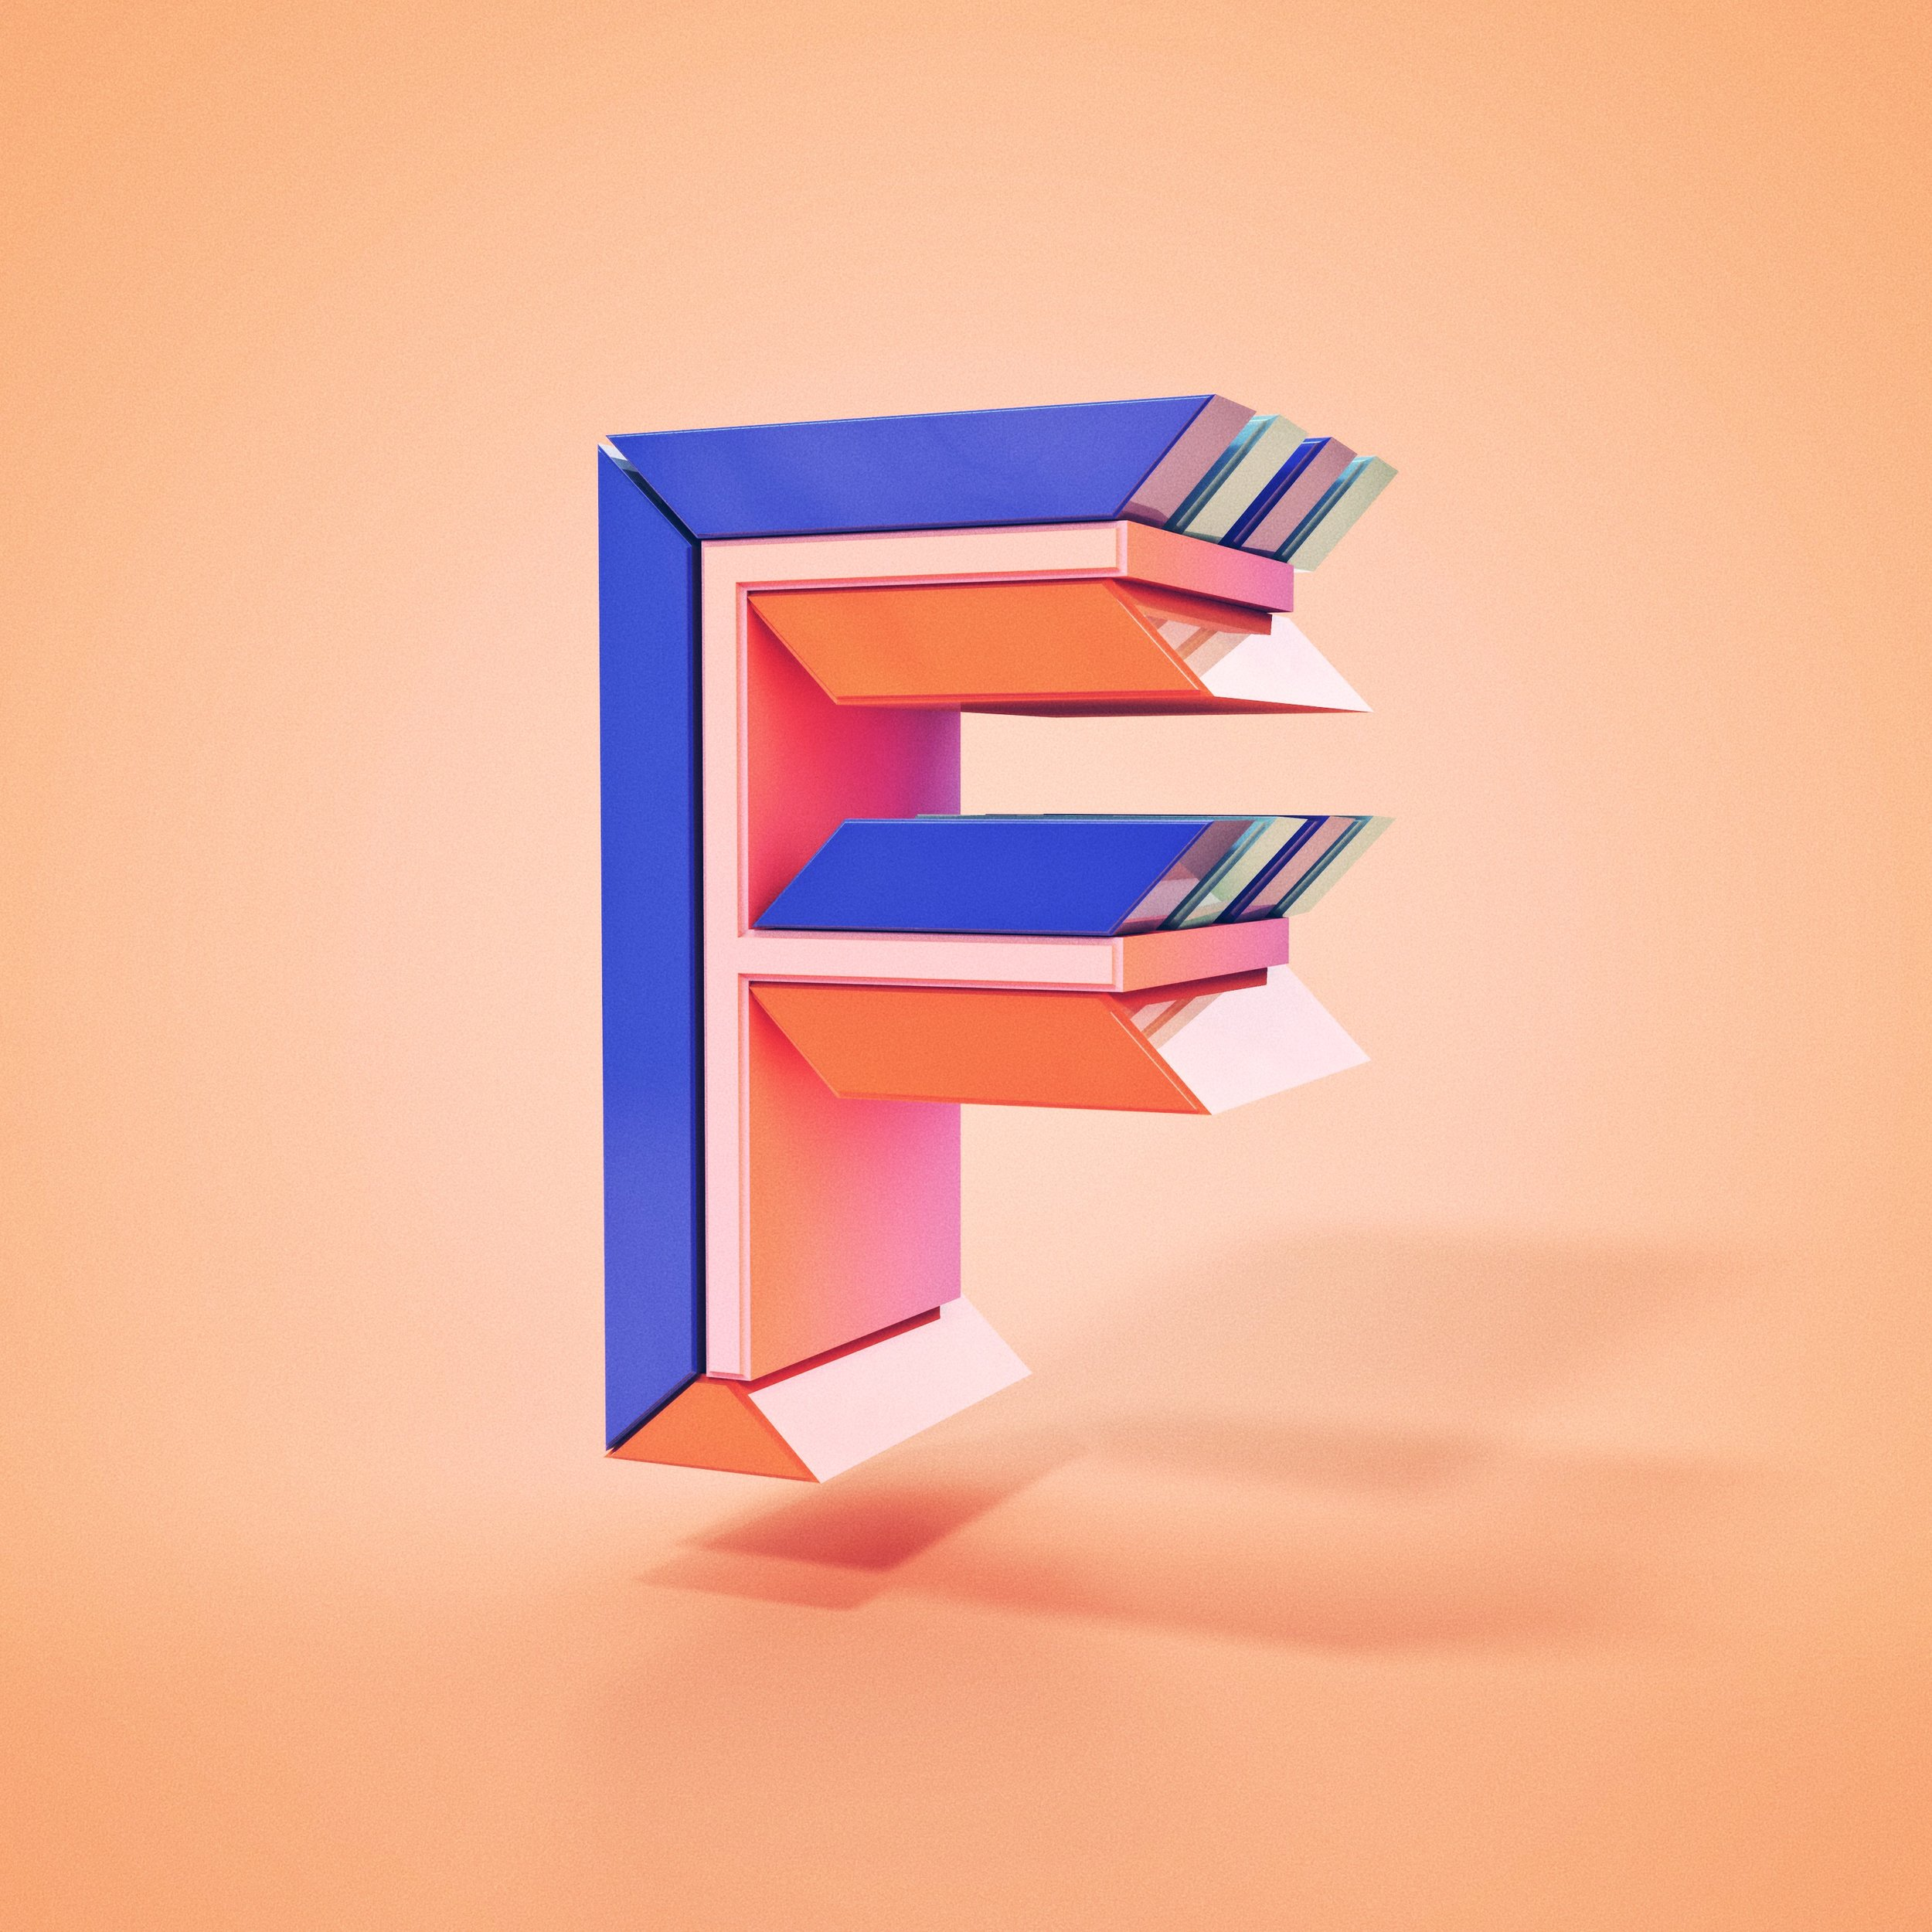 Day 06: Letter F